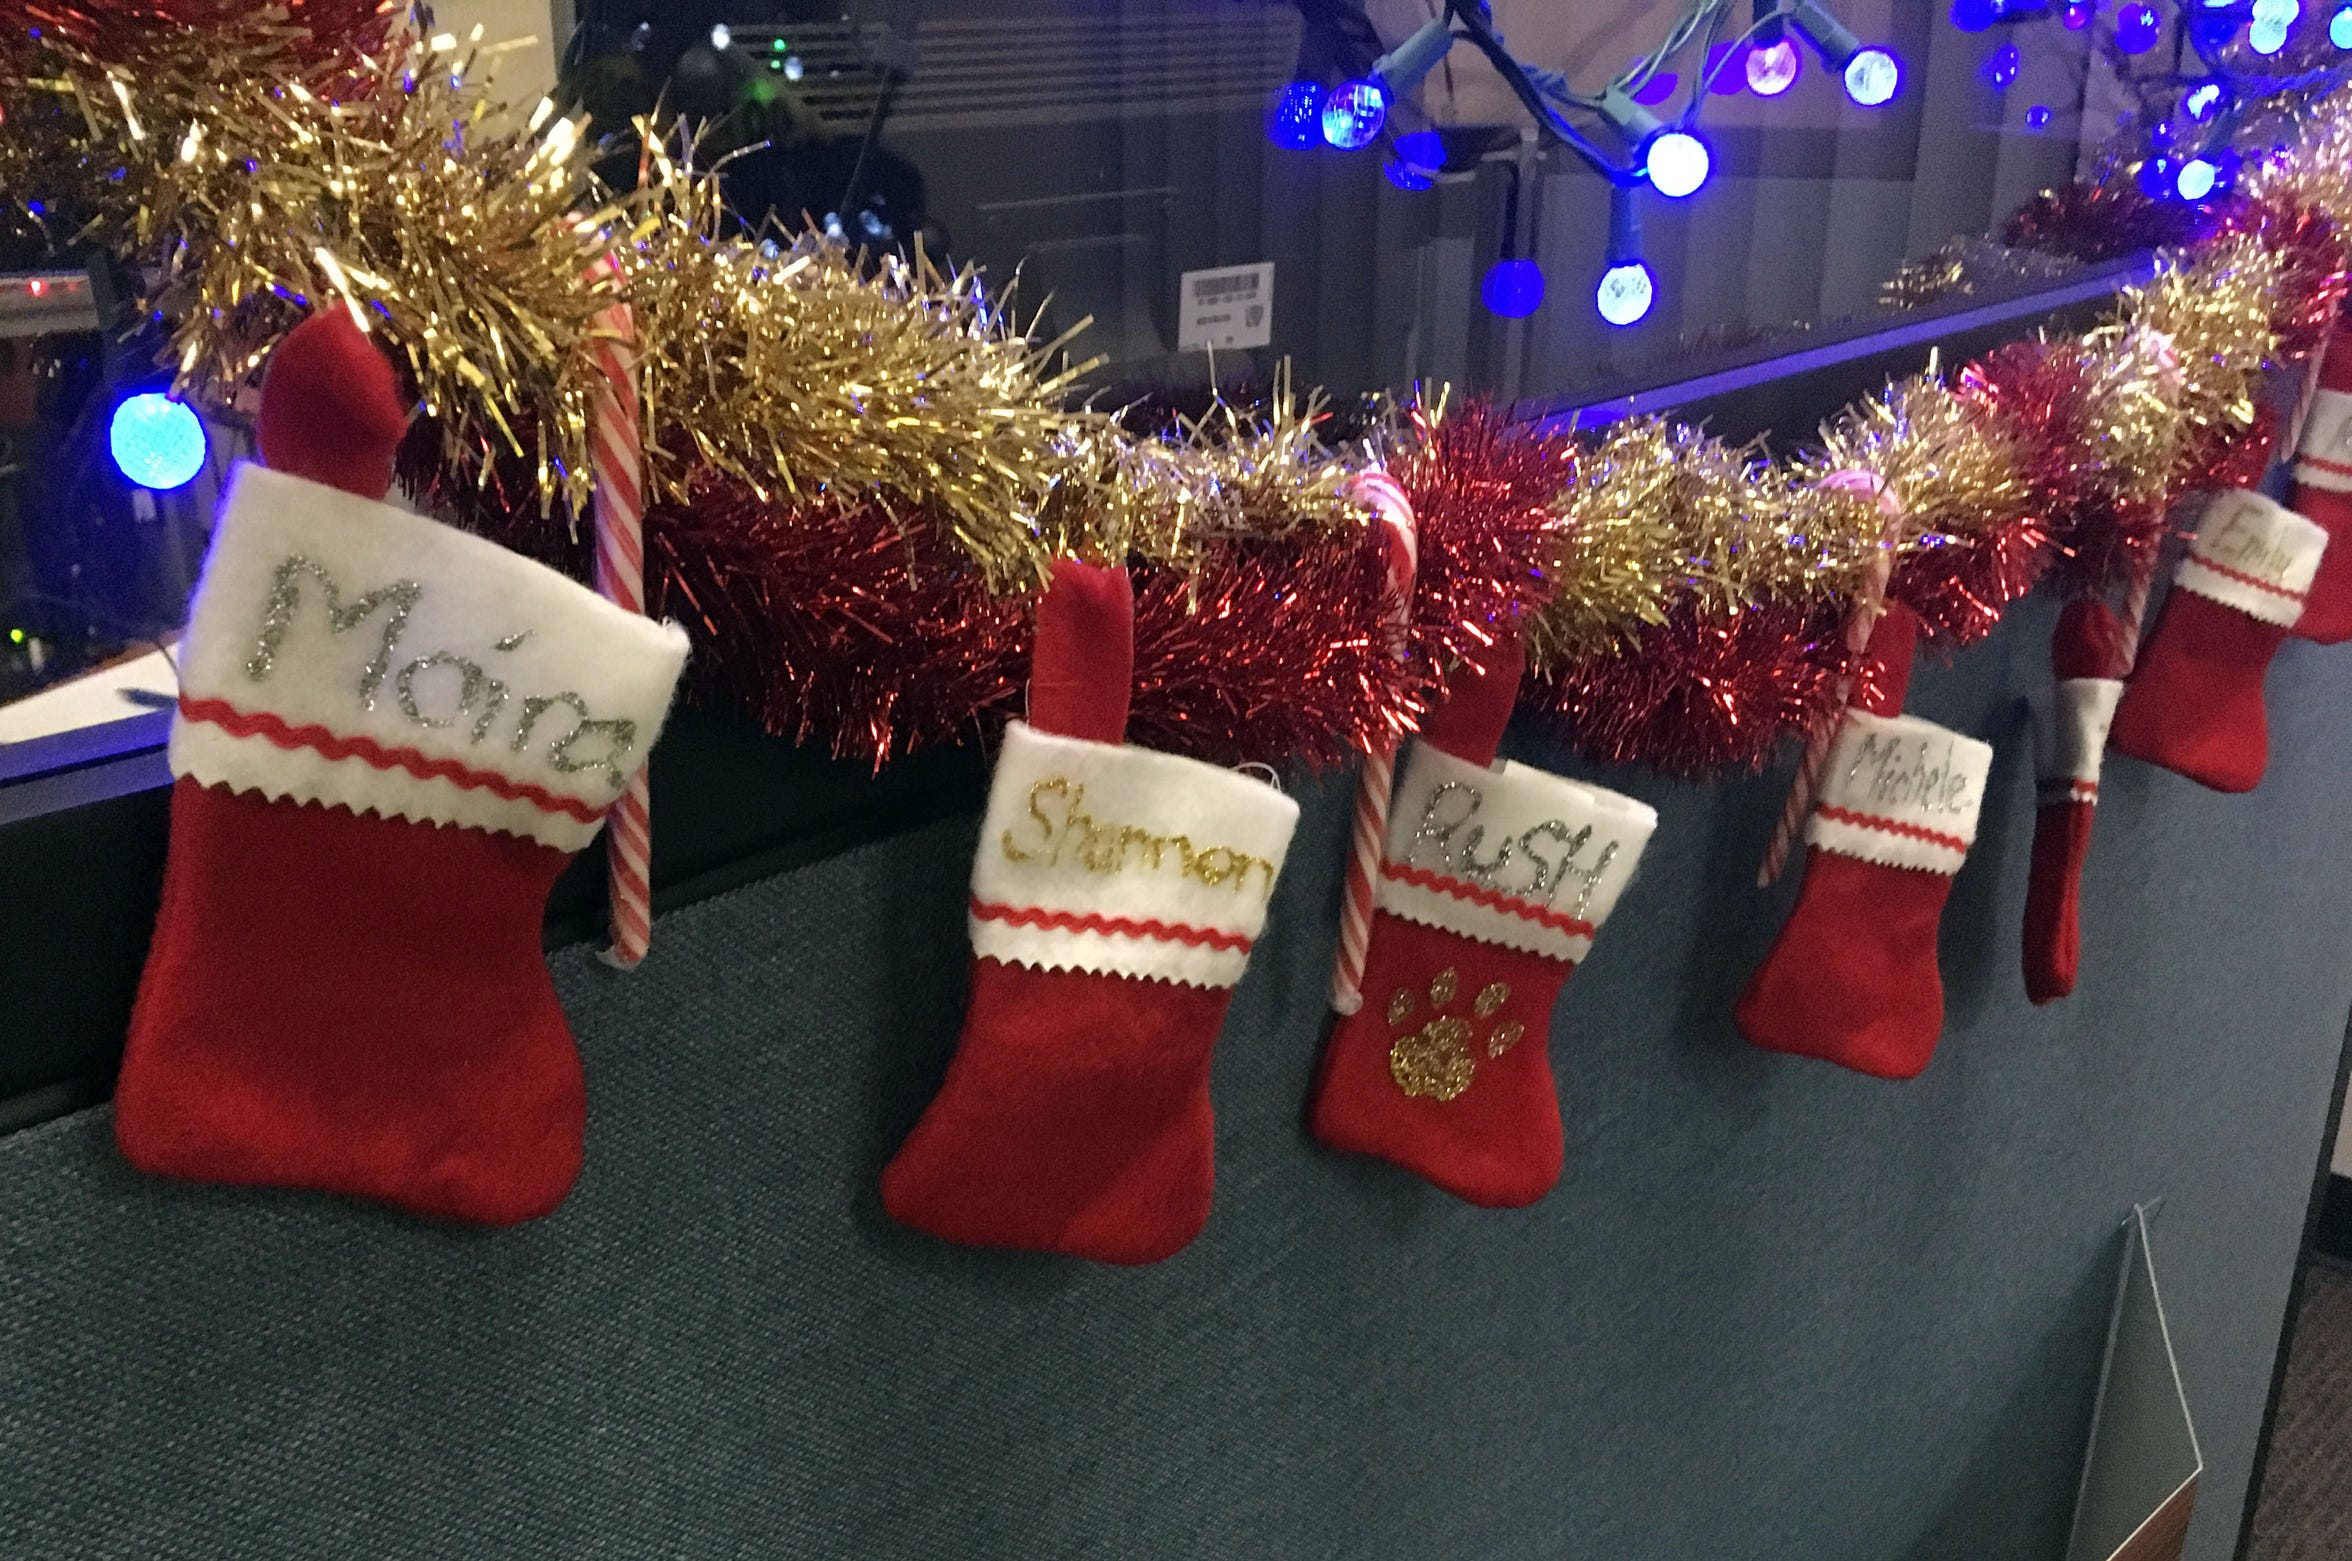 All the South Burlington police dispatchers hung stockings in the dispatch office before Christmas. K9 Rush also had his own stocking, as shown in a photo on Dec. 6, 2018.